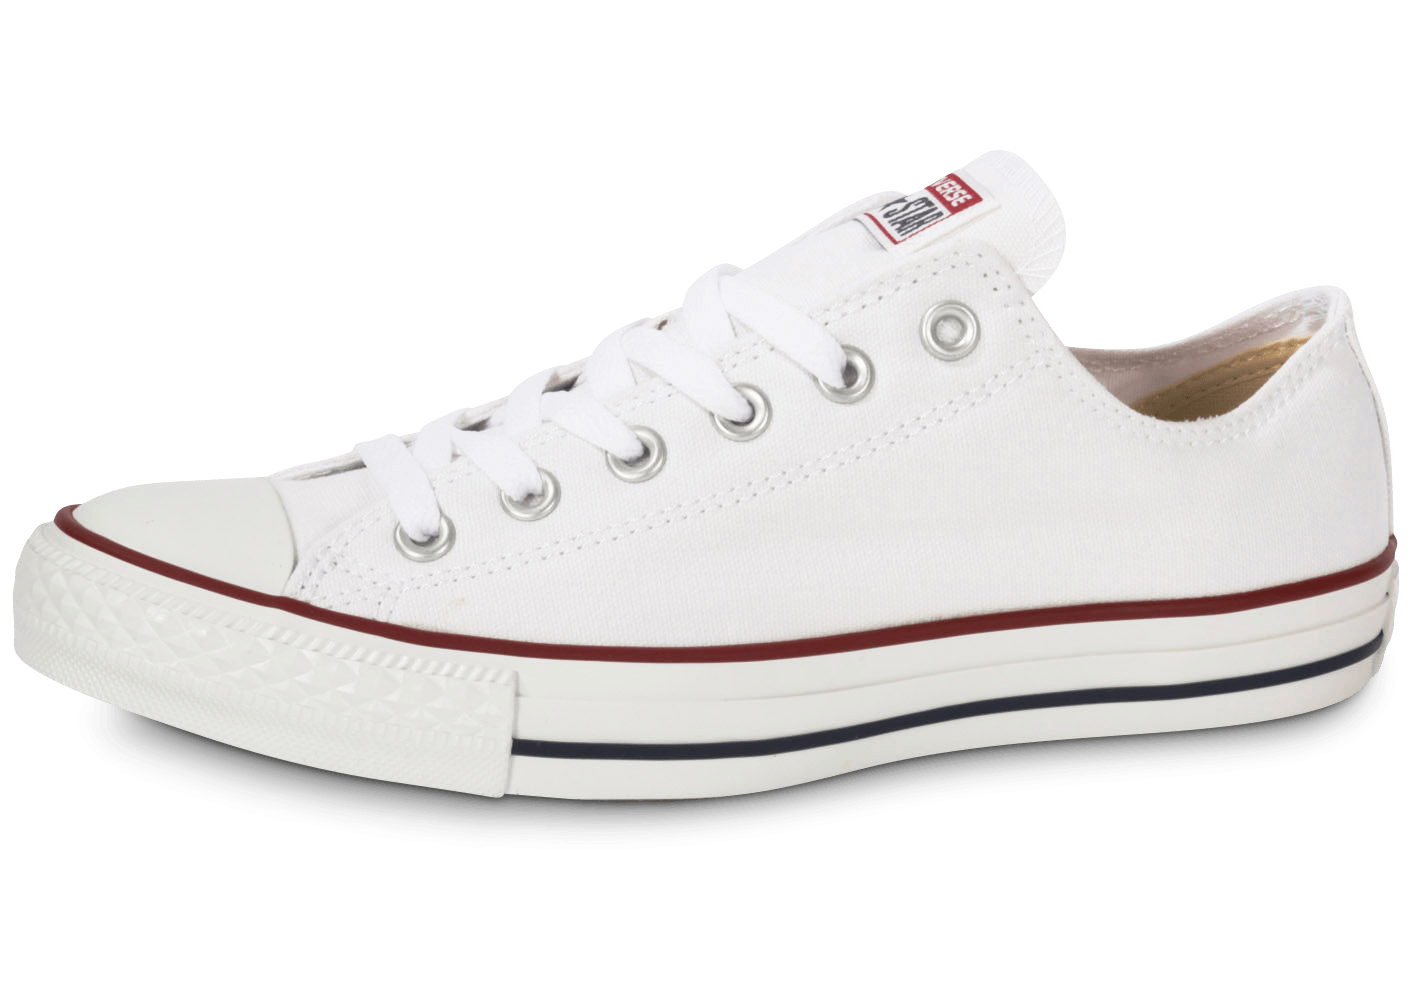 converse chuck taylor all star low blanche chaussures baskets femme chausport. Black Bedroom Furniture Sets. Home Design Ideas